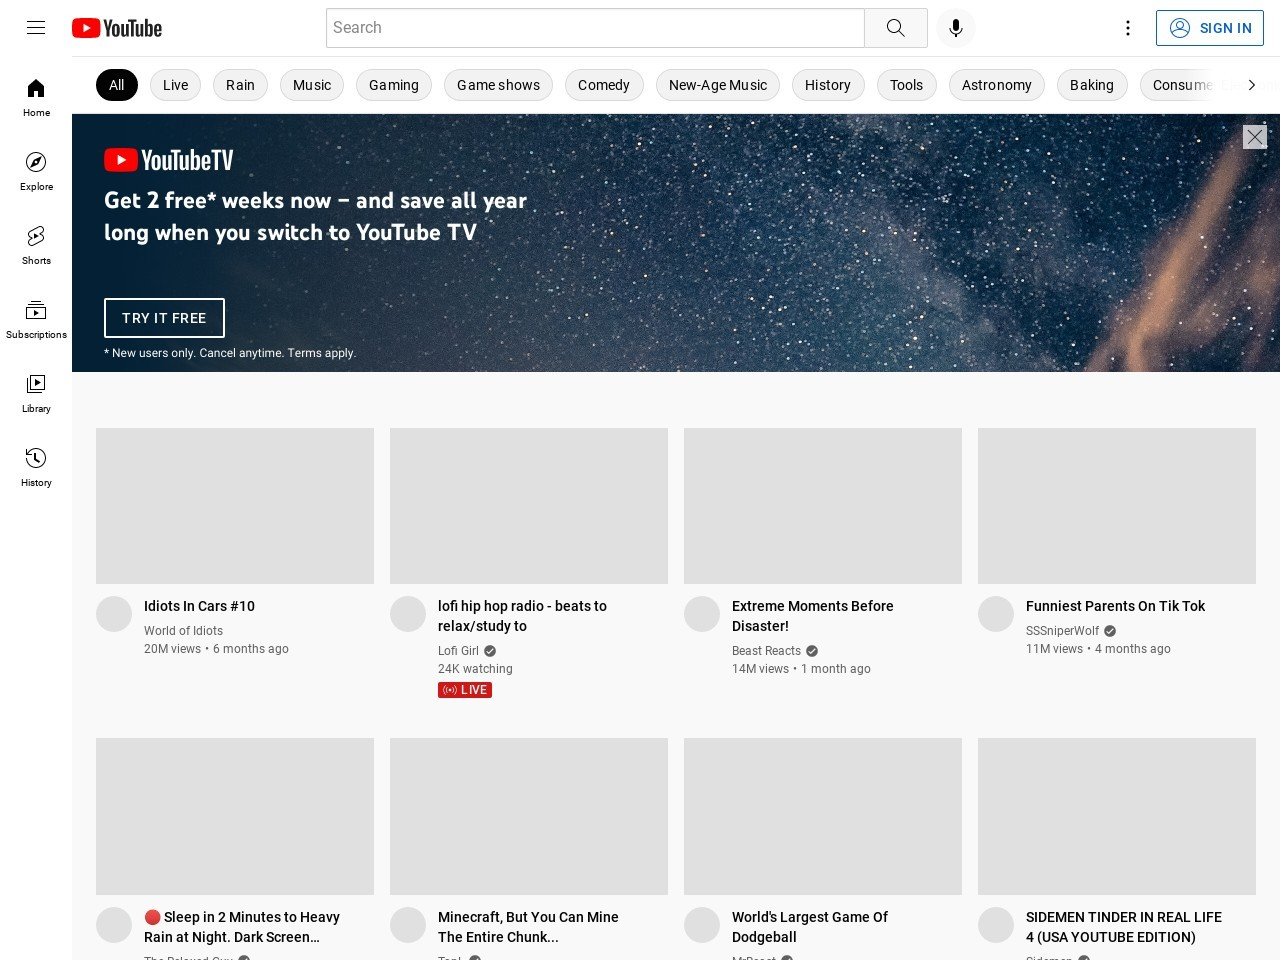 YouTube is not currently available on this device. - YouTube